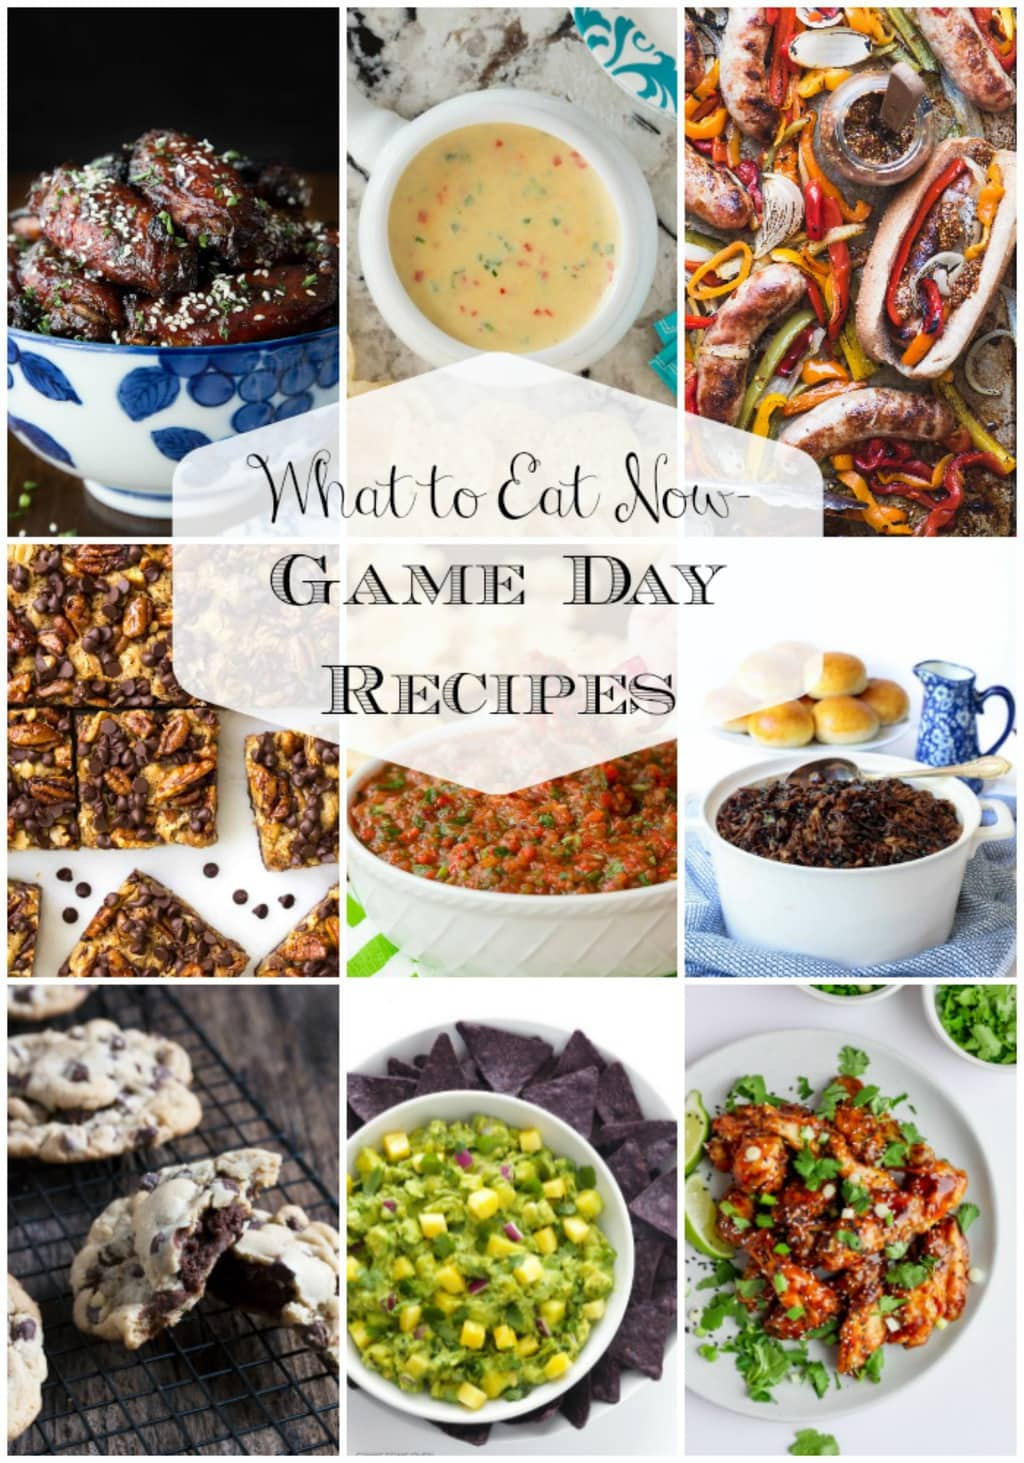 Photo collage of What to Eat Now - Game Day Recipes photos of game day recipes from all over the Internet.